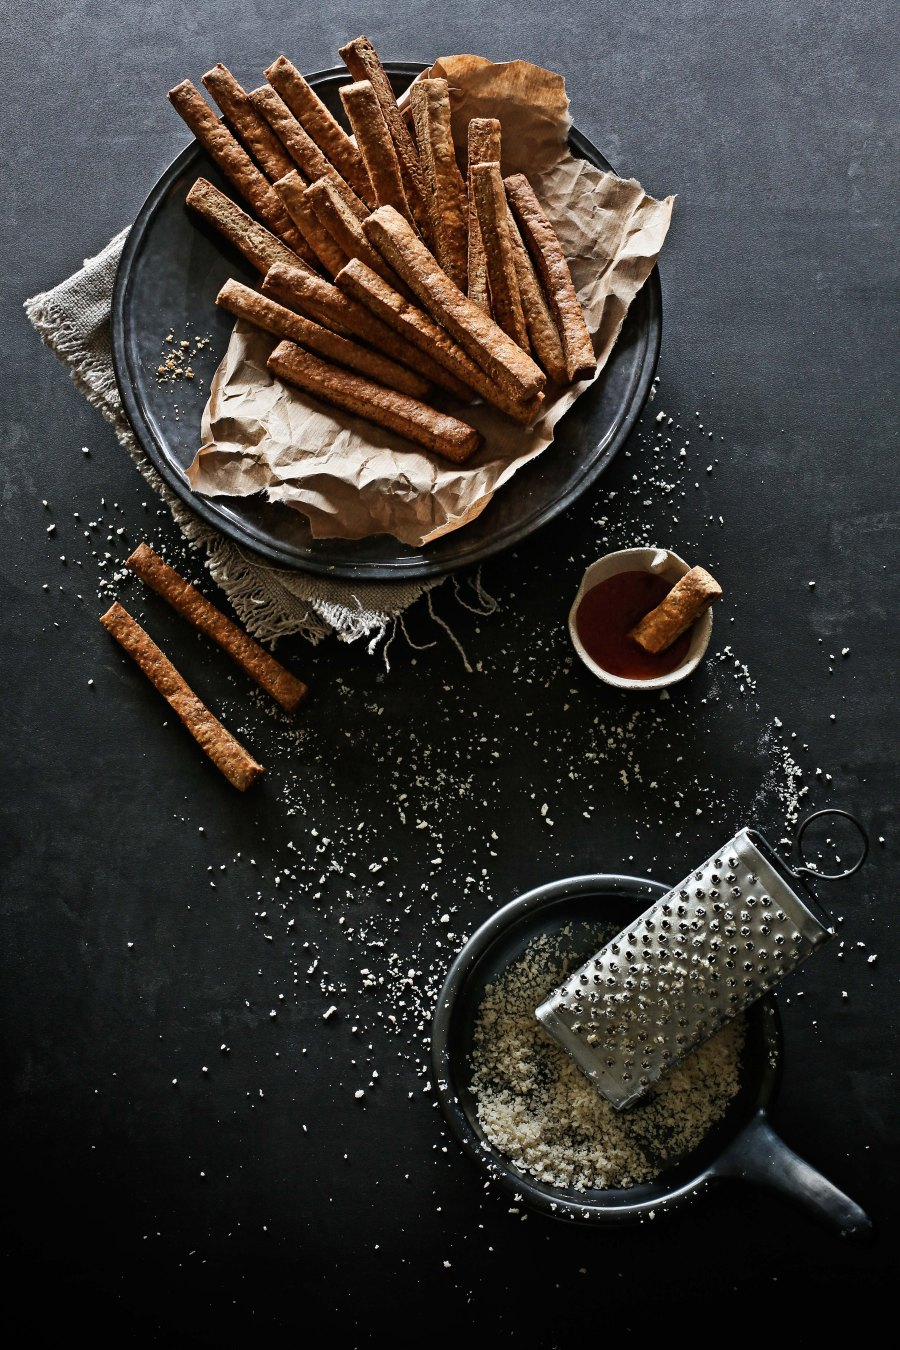 parmesan-sticks0